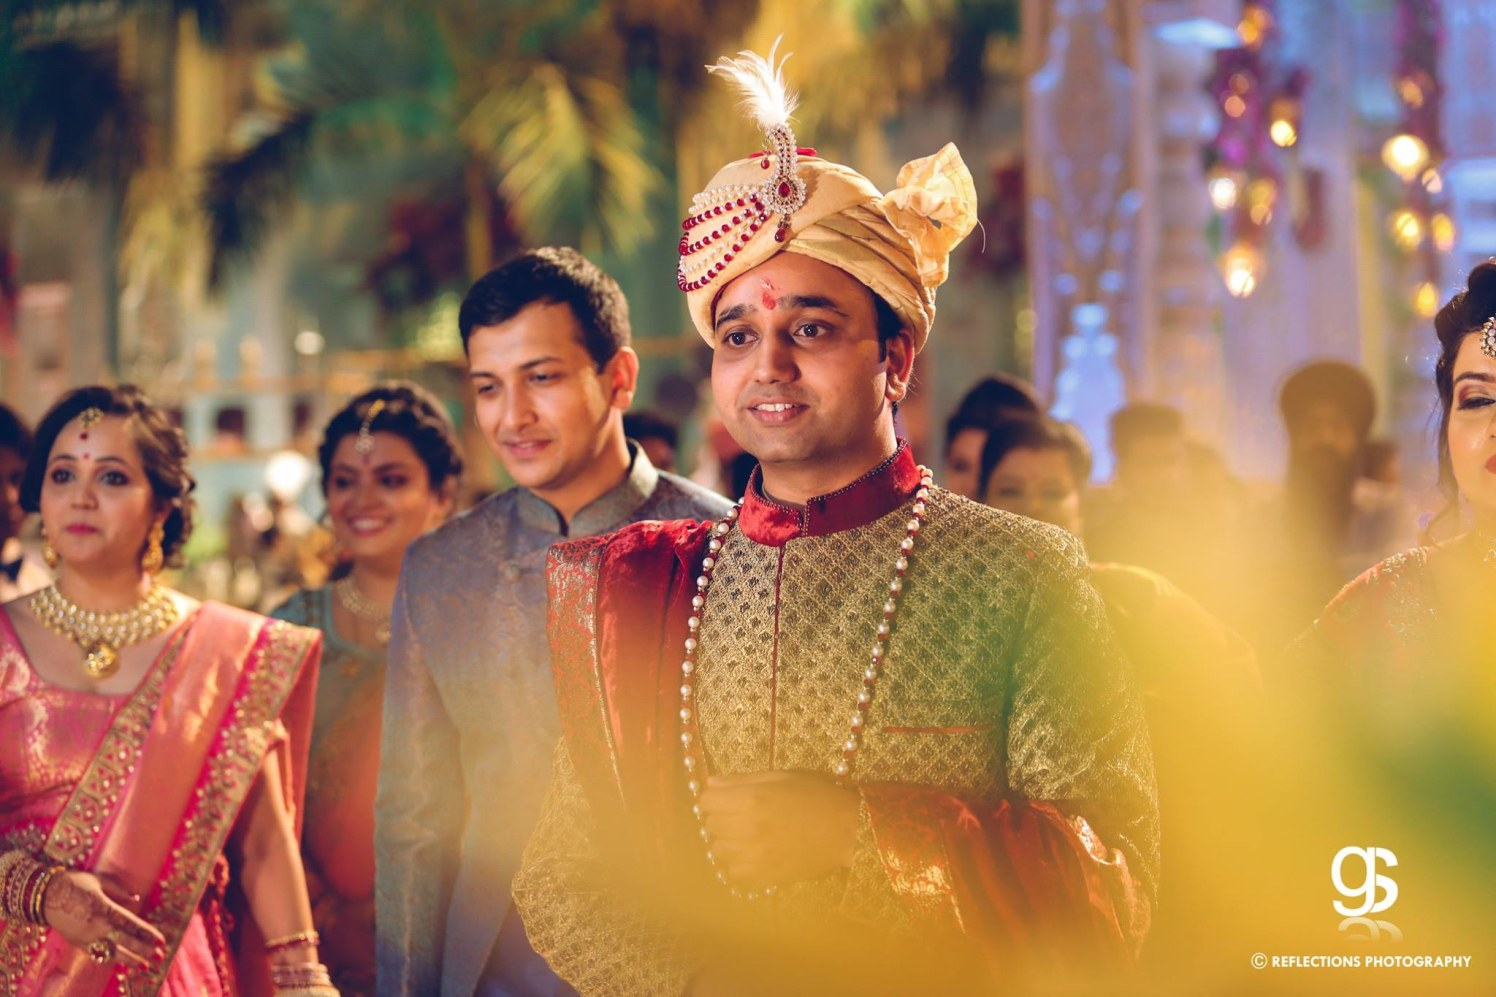 Here come the groom! by Reflections Photography Wedding-photography | Weddings Photos & Ideas